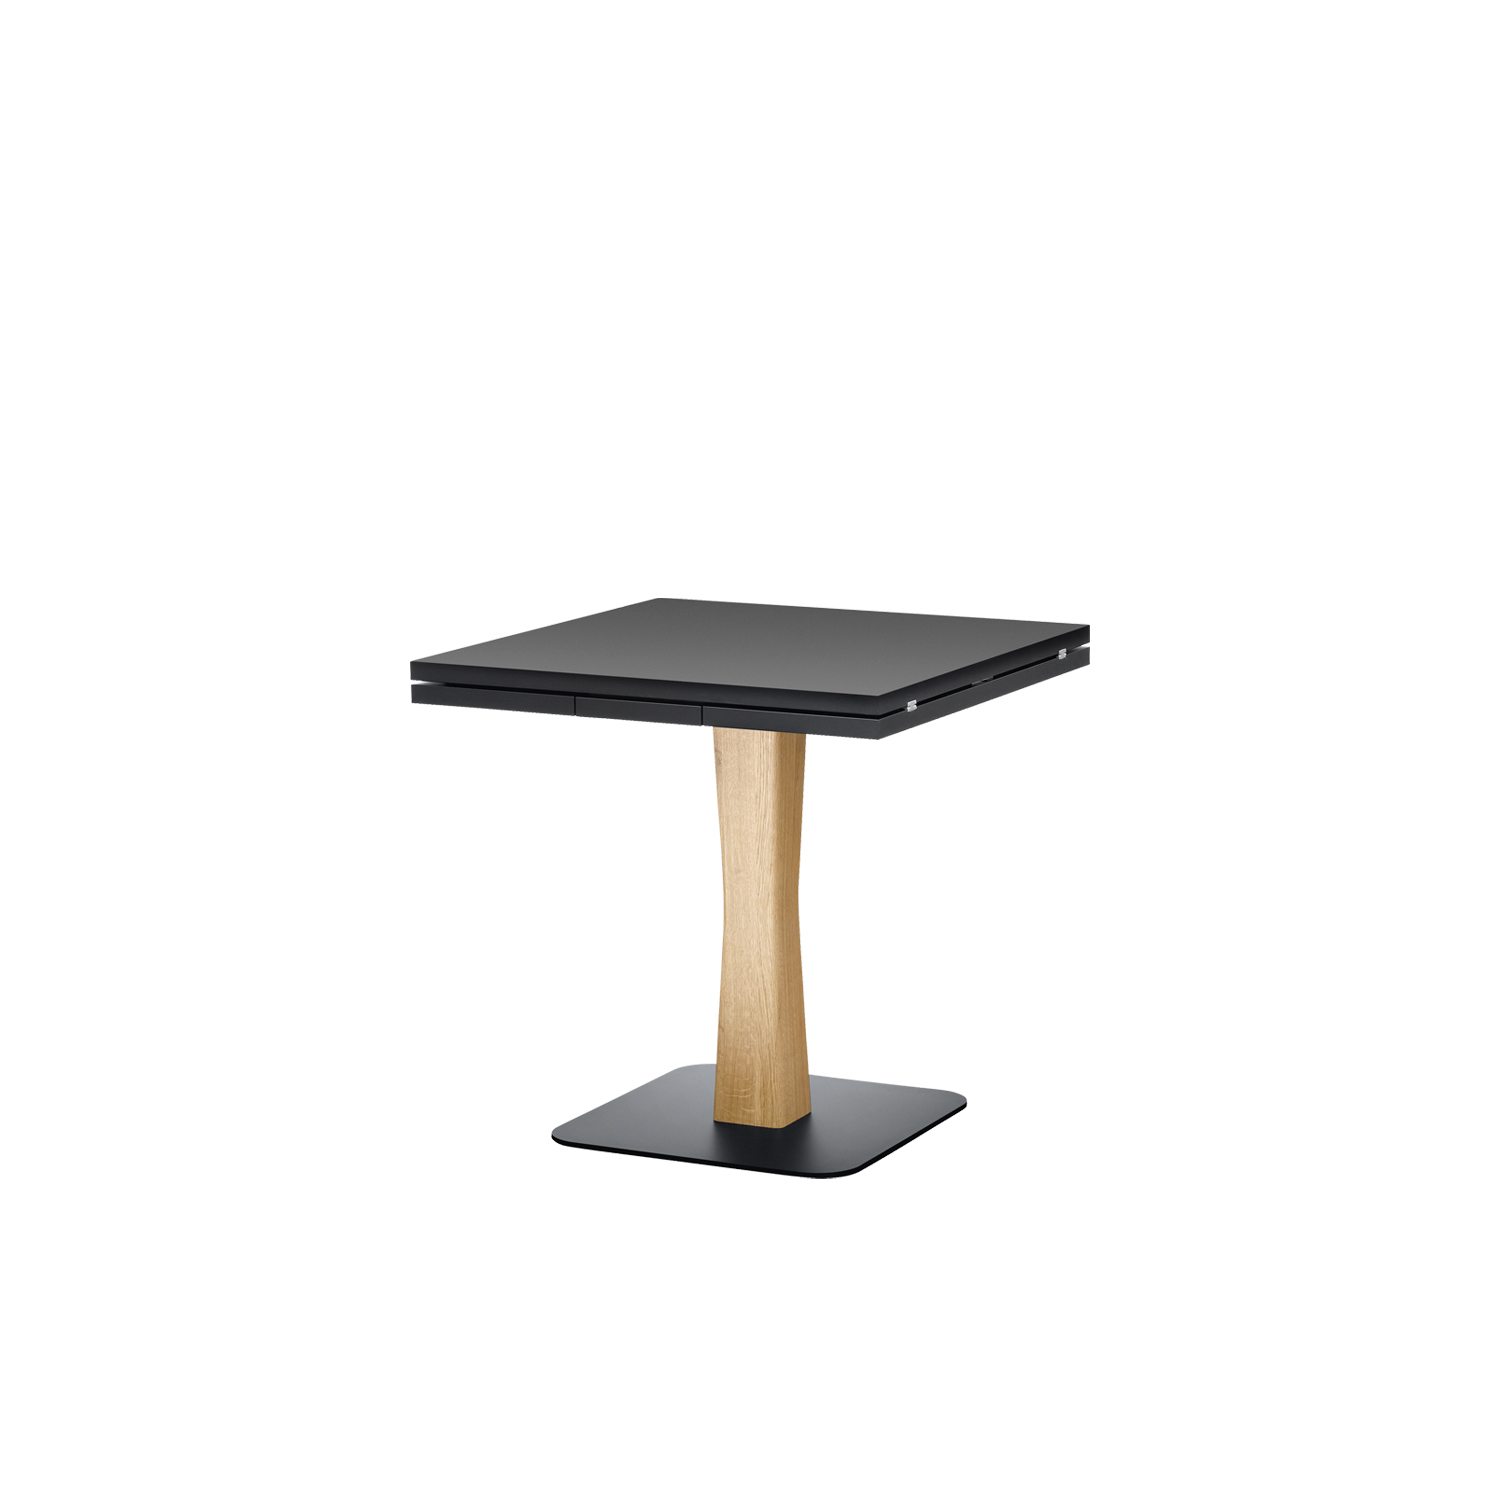 Gualtiero Extendable Table - Gualtiero is designed for smaller, more intimate spaces, from bistros to small apartments, finding the spot for an iconic, practical table. A range of materials, colours and sizes are available in a number of combinations. Prices may vary. Please enquire for full details.  | Matter of Stuff